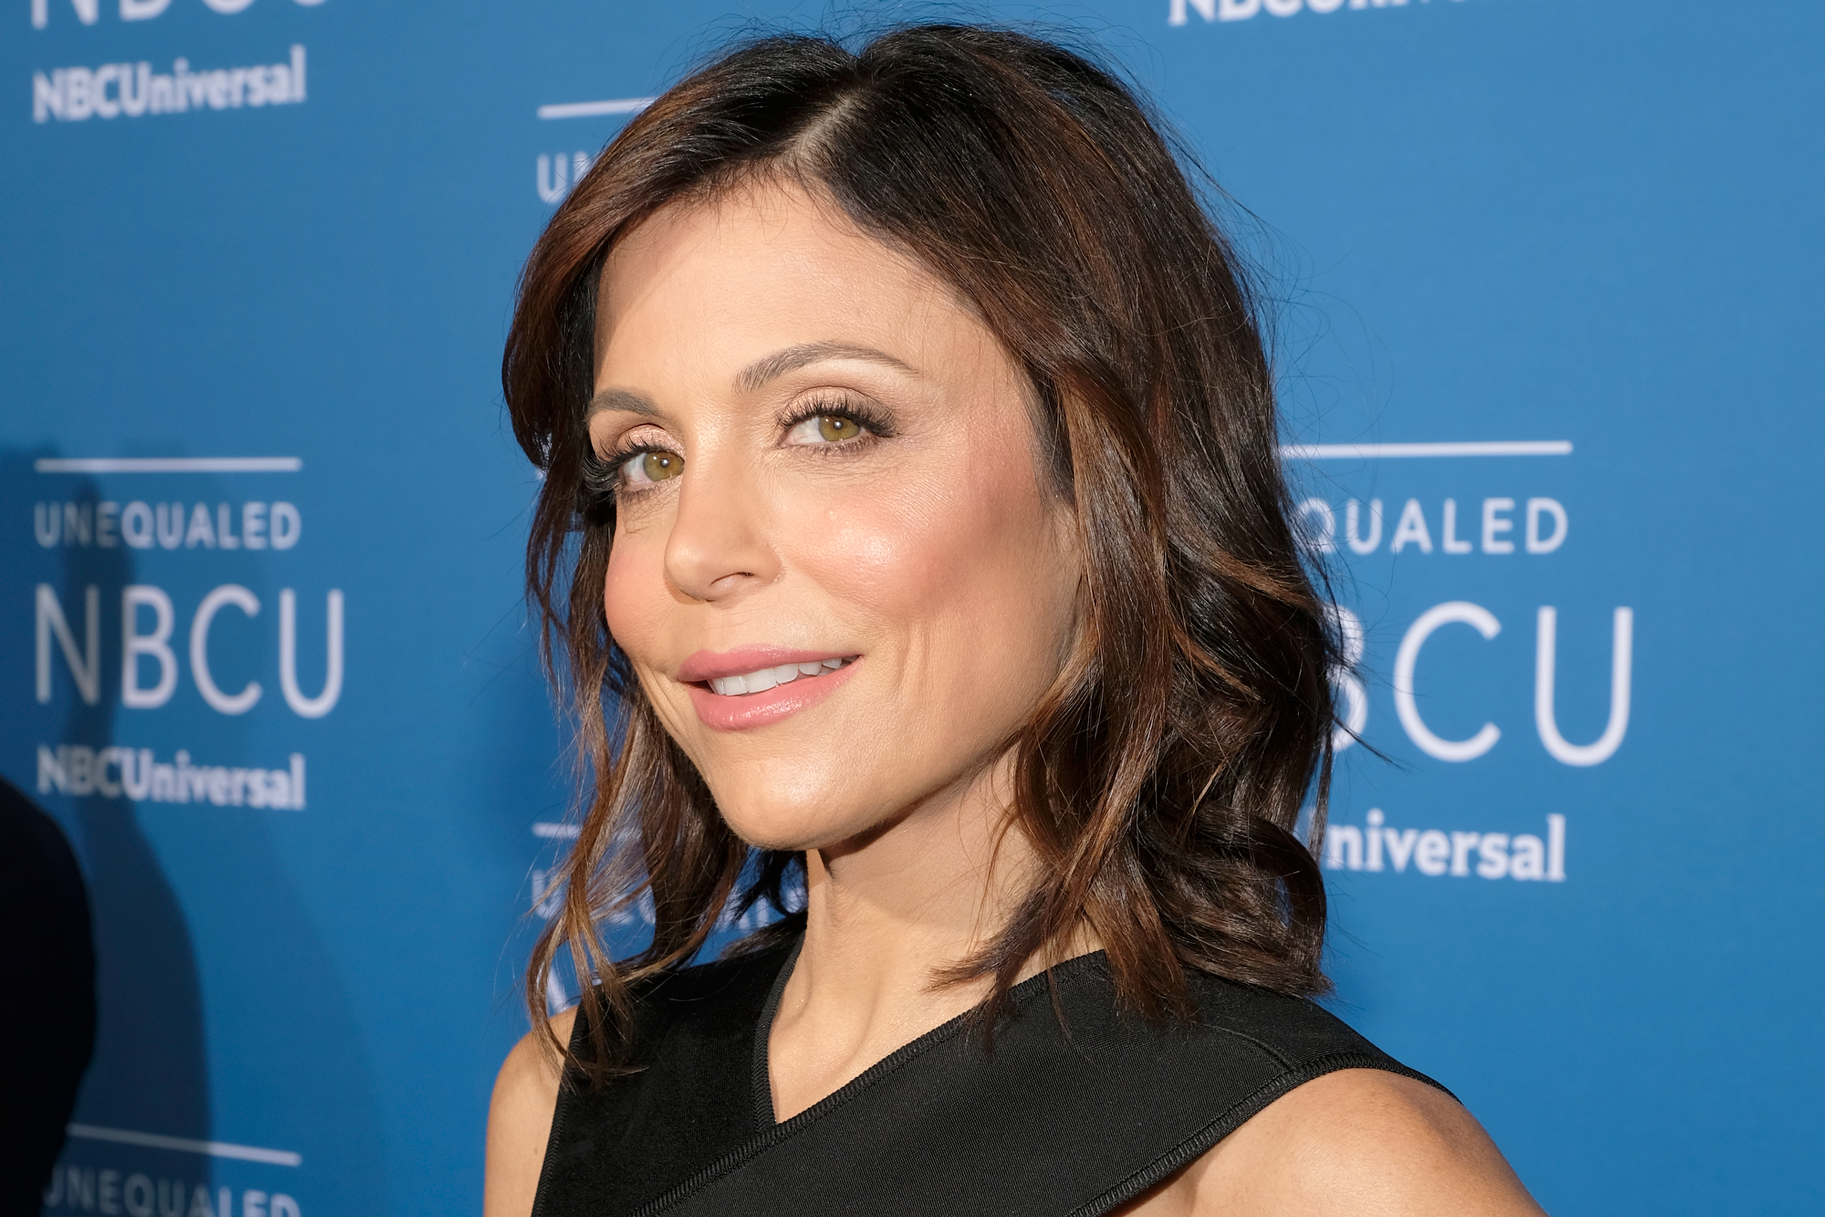 'RHONY' Star Bethenny Frankel Almost Dies After Having Allergic Reaction to Fish